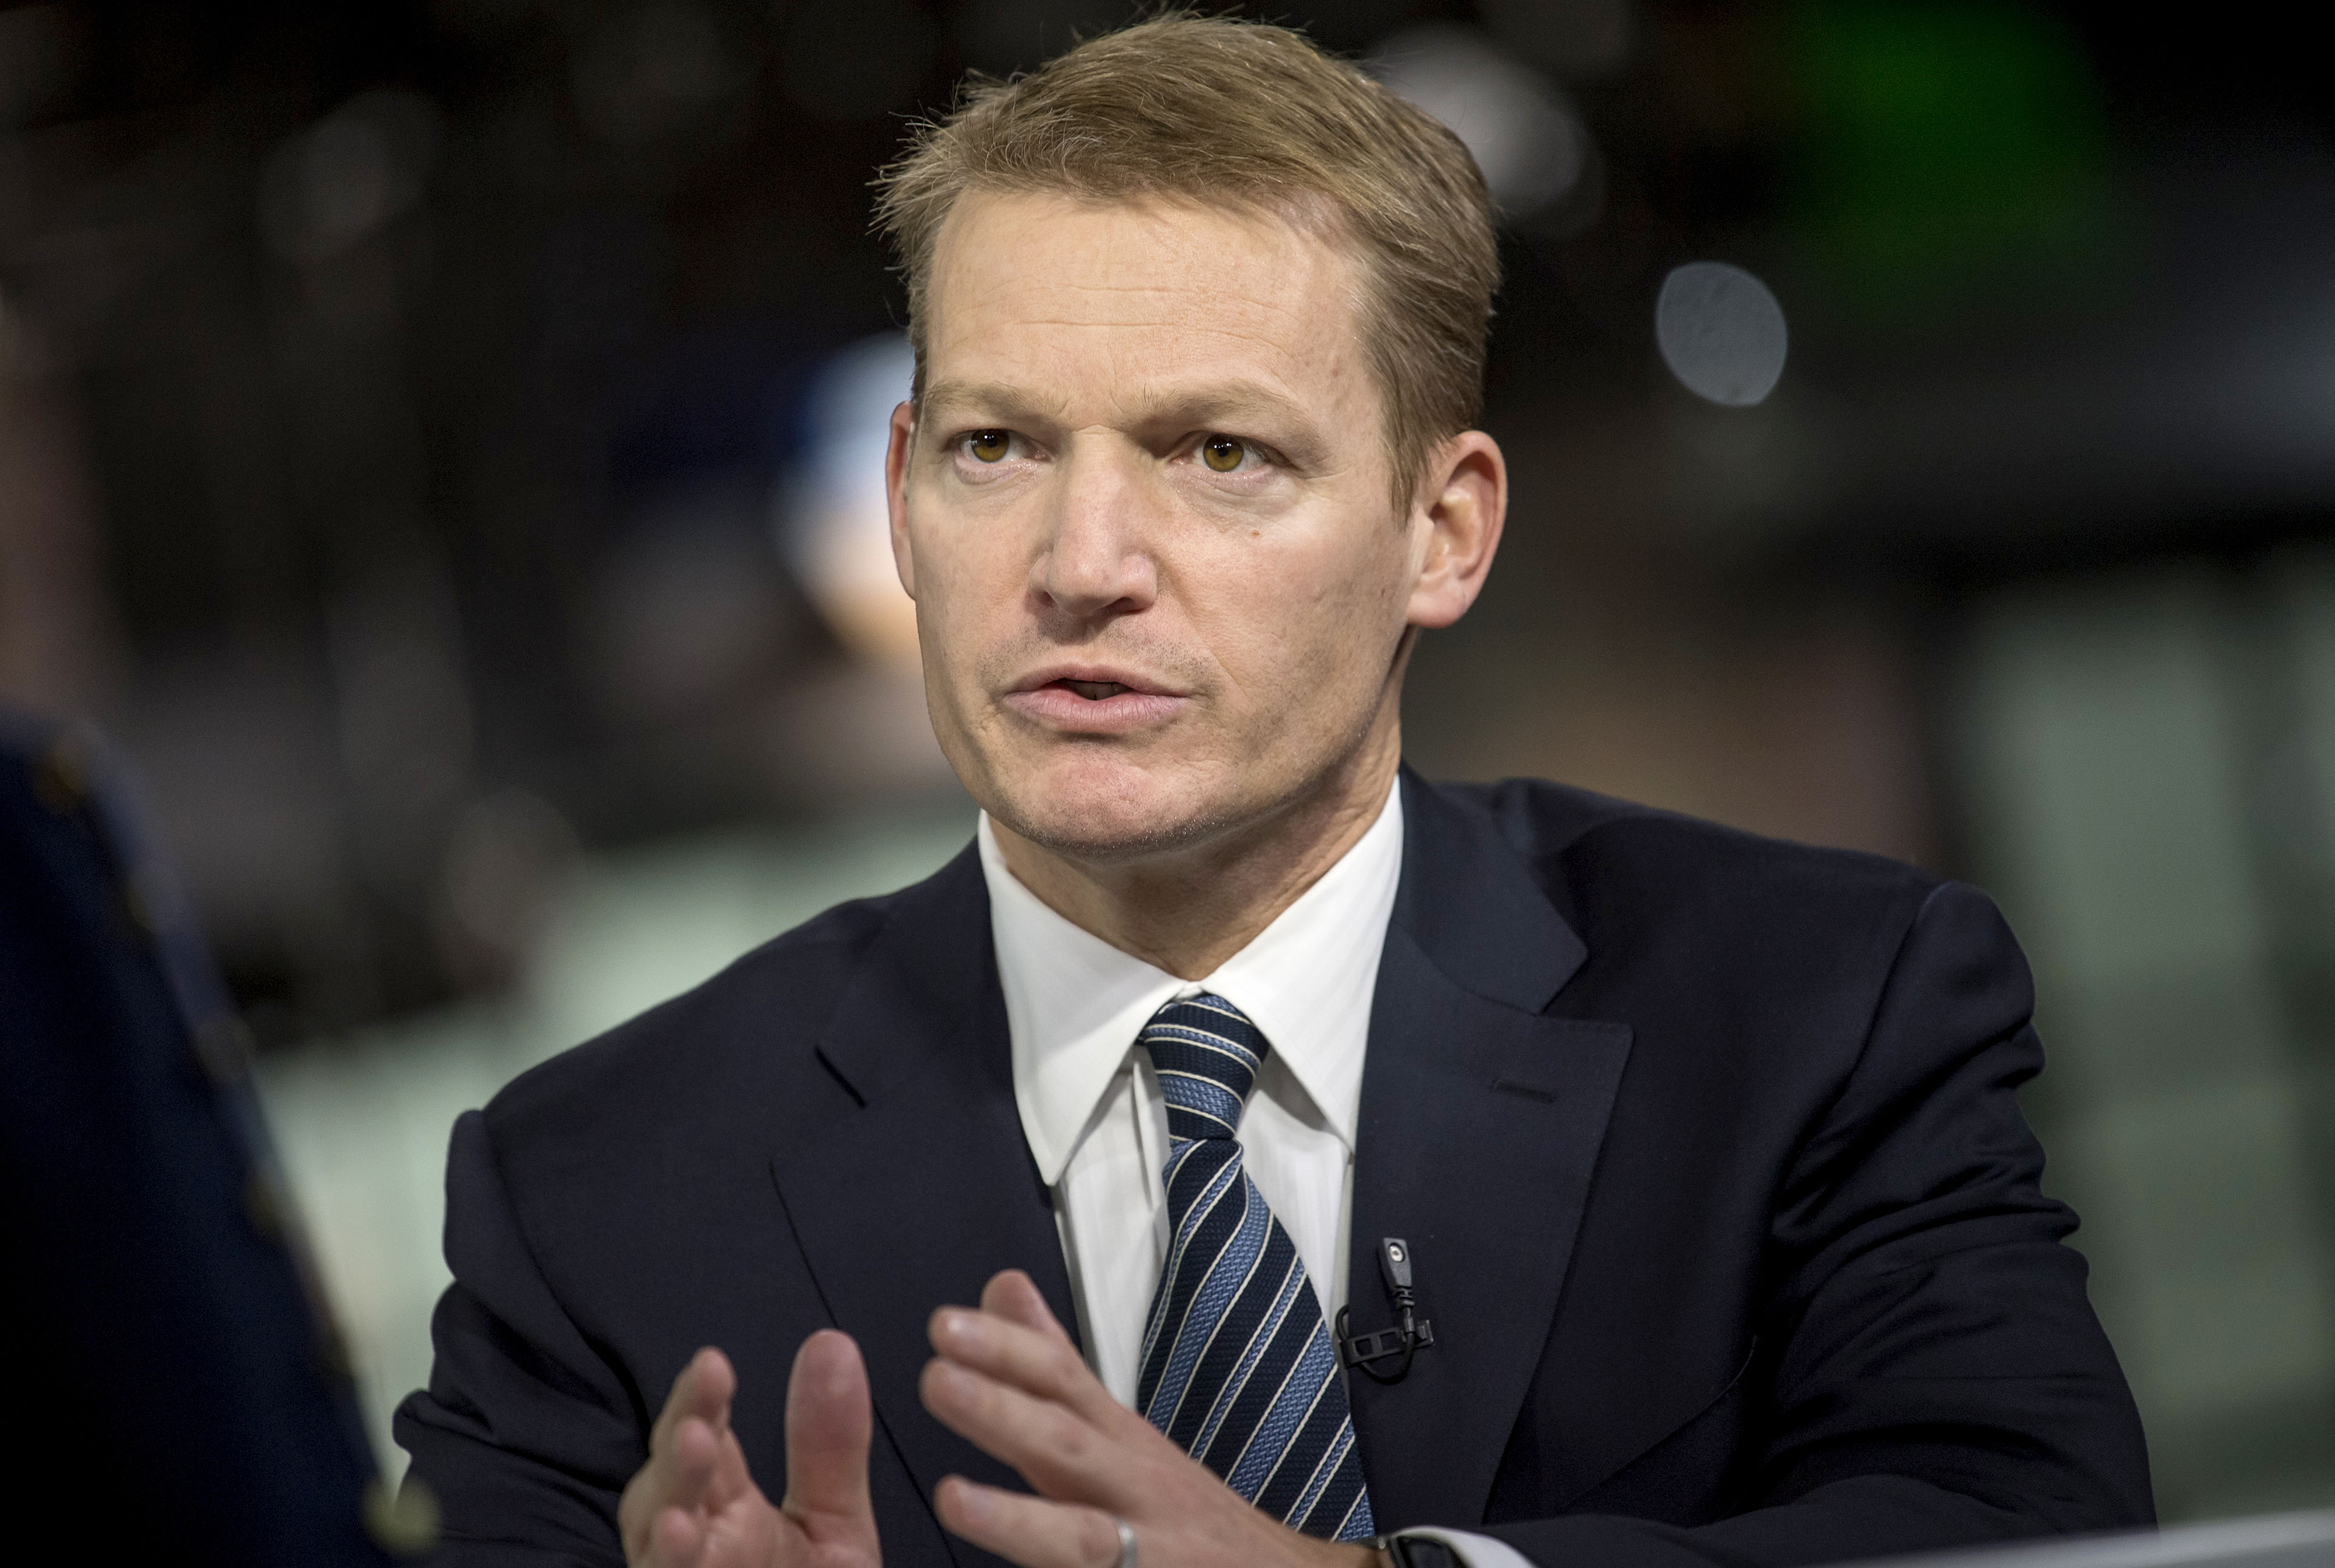 Fireeye Inc. Chief Executive Officer Kevin Mandia Interview